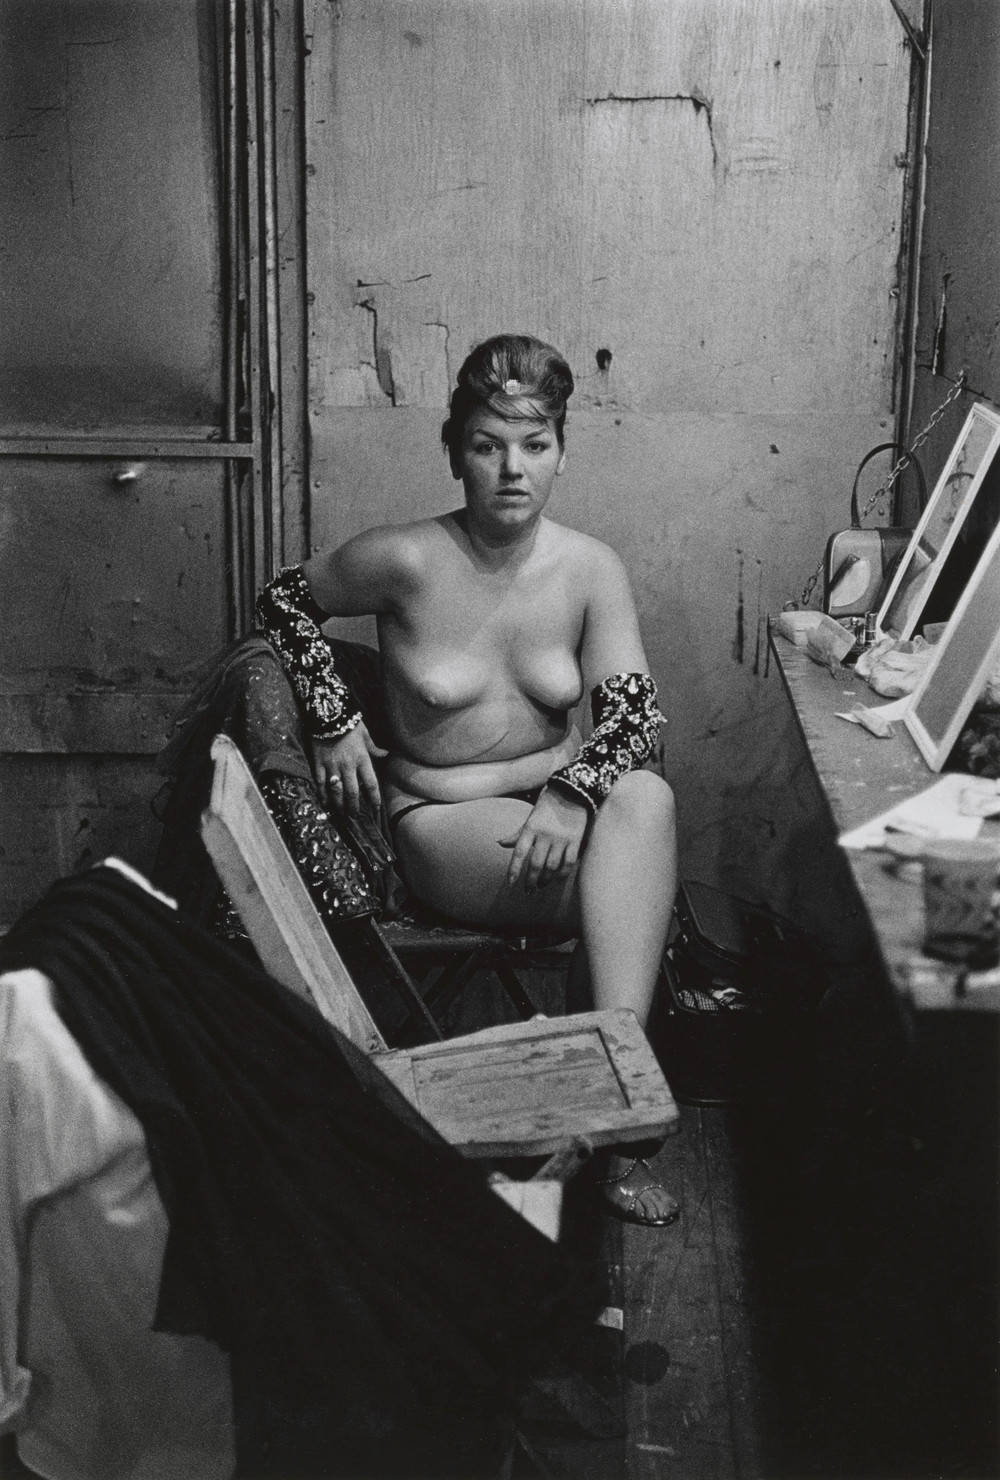 Stripper with bare breasts sitting in her dressing room, Atlantic City, N.J. 1961 © The Estate of Diane Arbus, LLC. All Rights Reserved